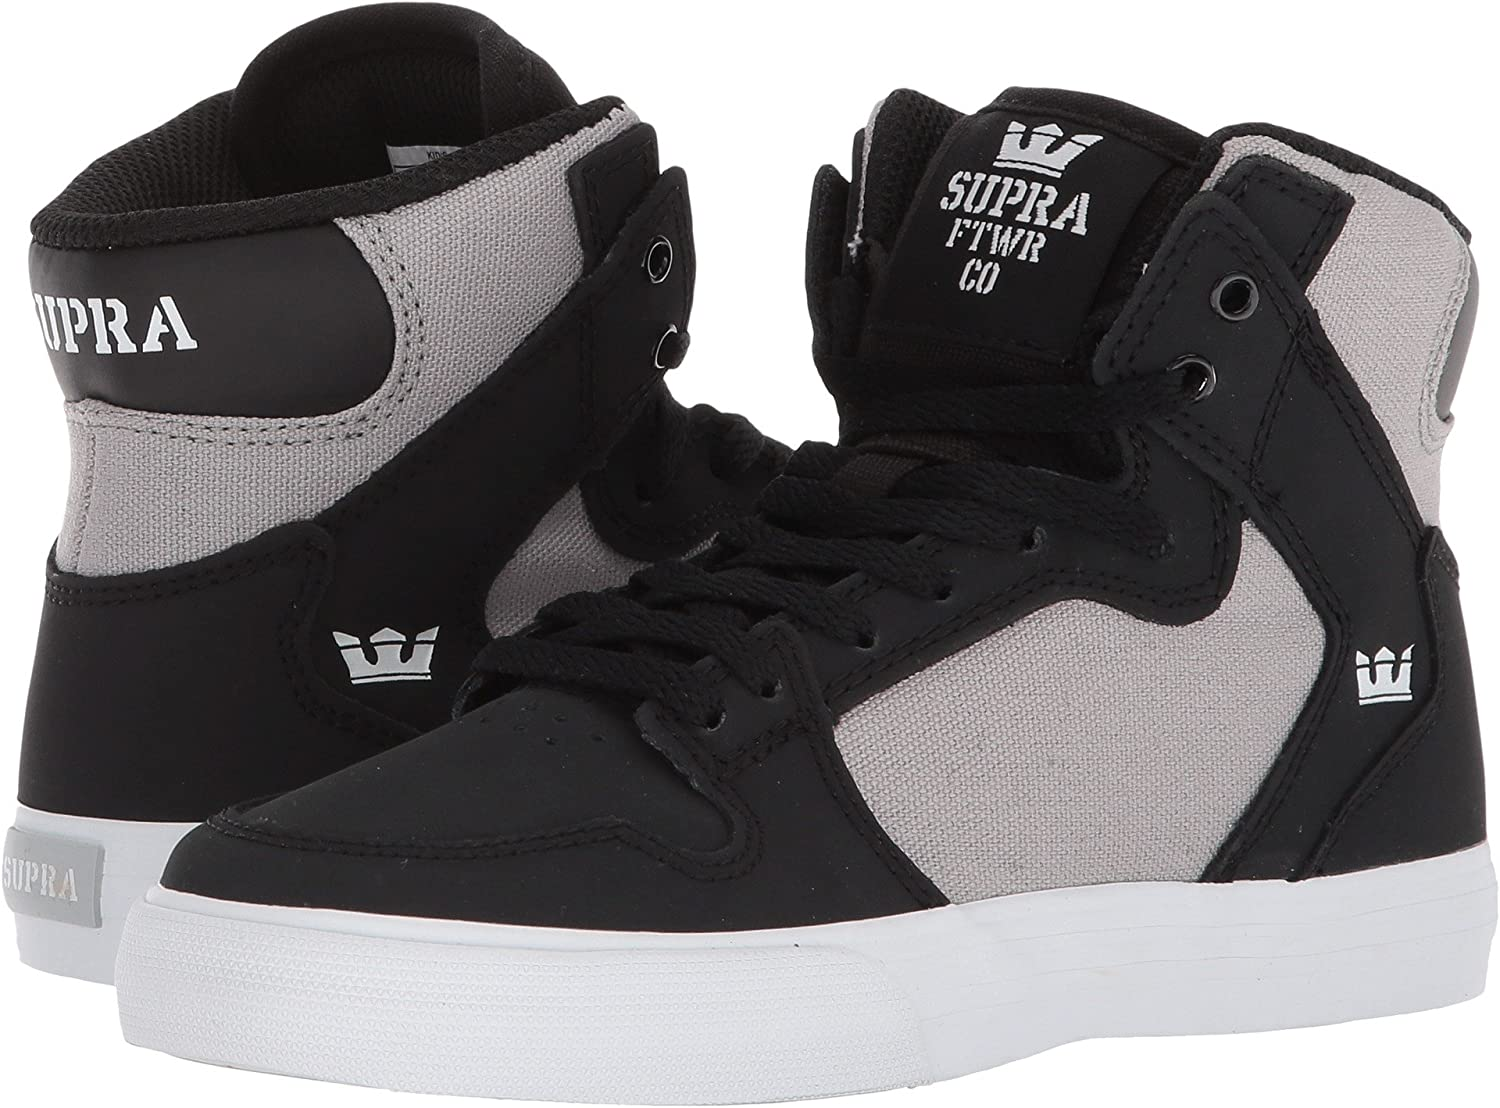 Supra Mens Skytop III Shoes Black/Light Grey/White